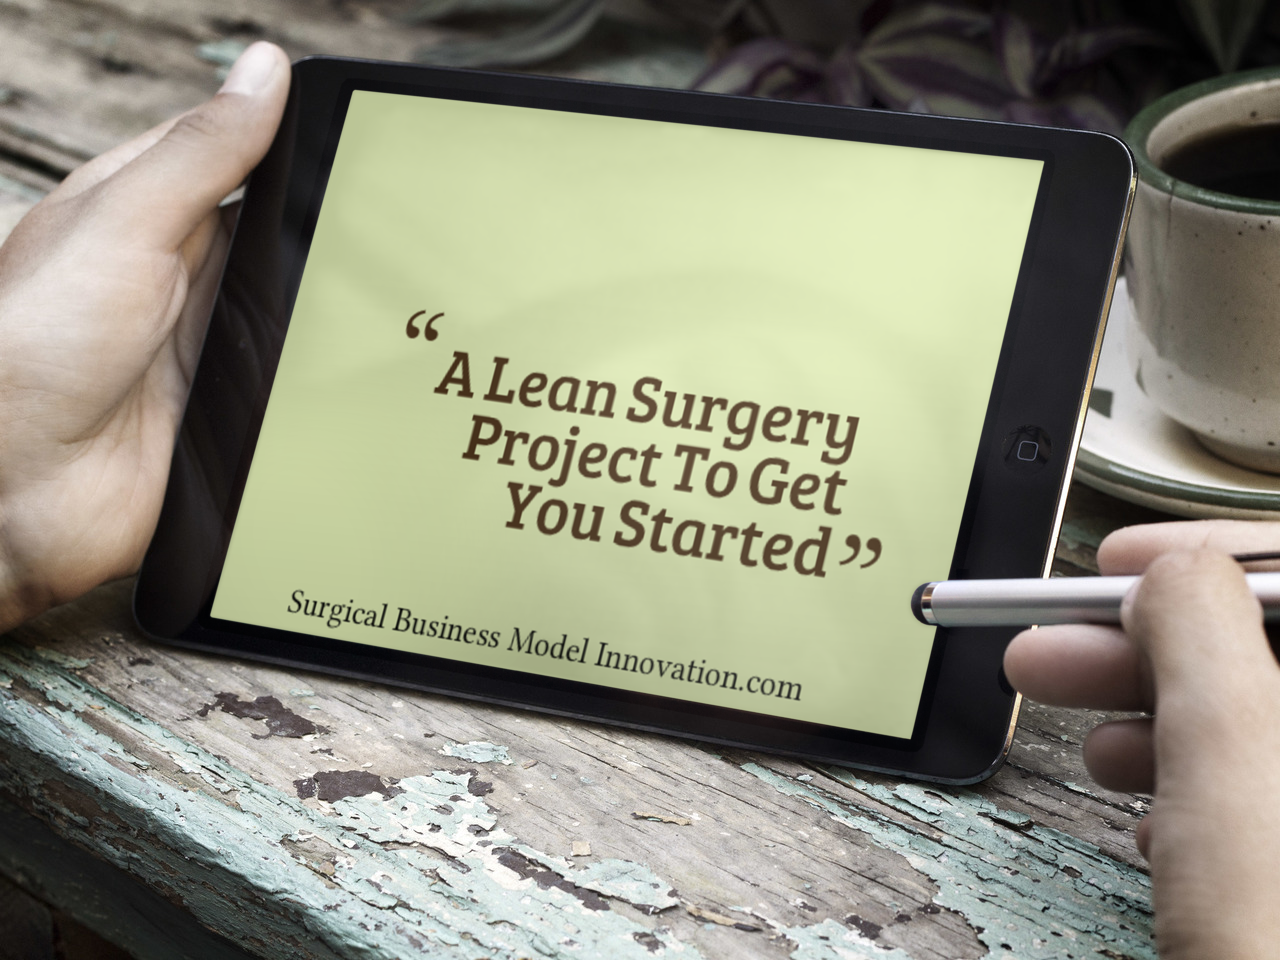 A Lean Surgery Project To Get You Started